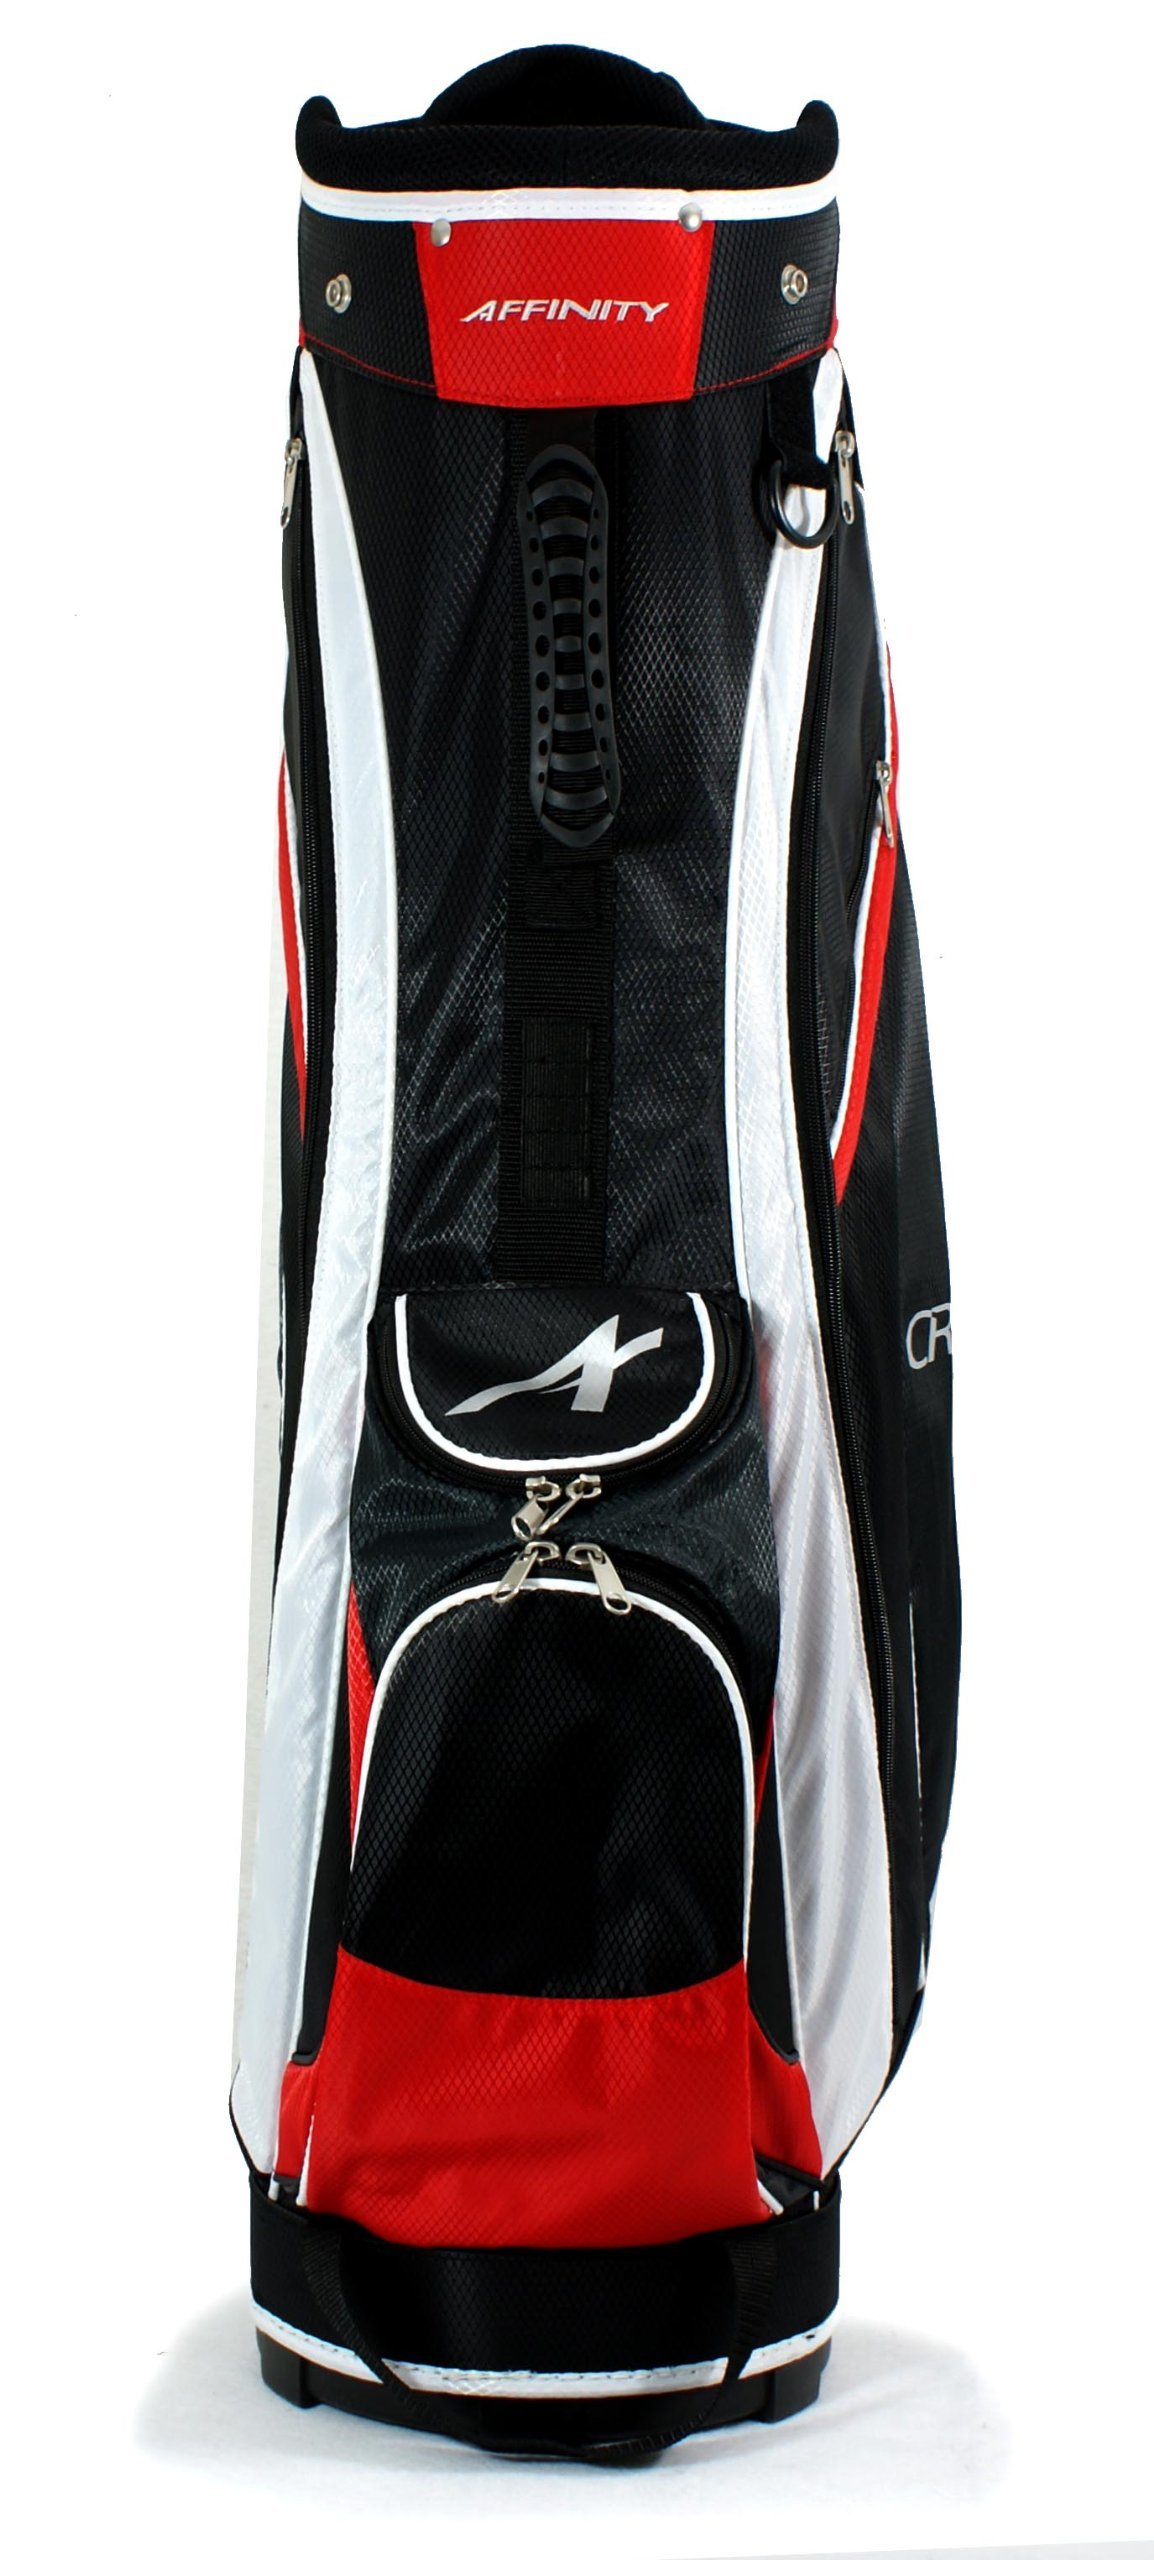 AFFINITY CRZ 9.5 Golf Cart Bag, Black/Red/White by Affinity (Image #4)